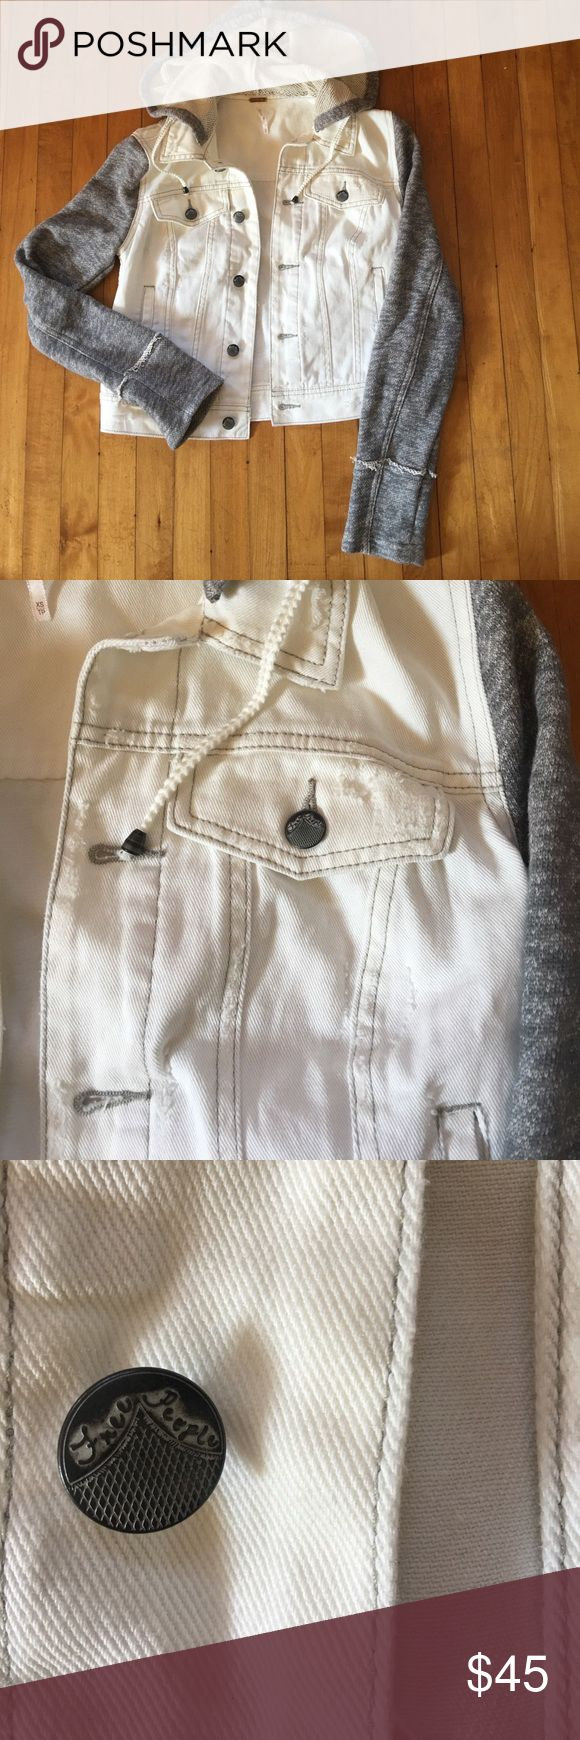 Free People Jacket with hood This is a super soft Kacey by Free People. The white vest is distressed and the sleeves are a soft stretchy cotton. The hood is removable as evidenced by the buttons in the photo. Free People Jackets & Coats